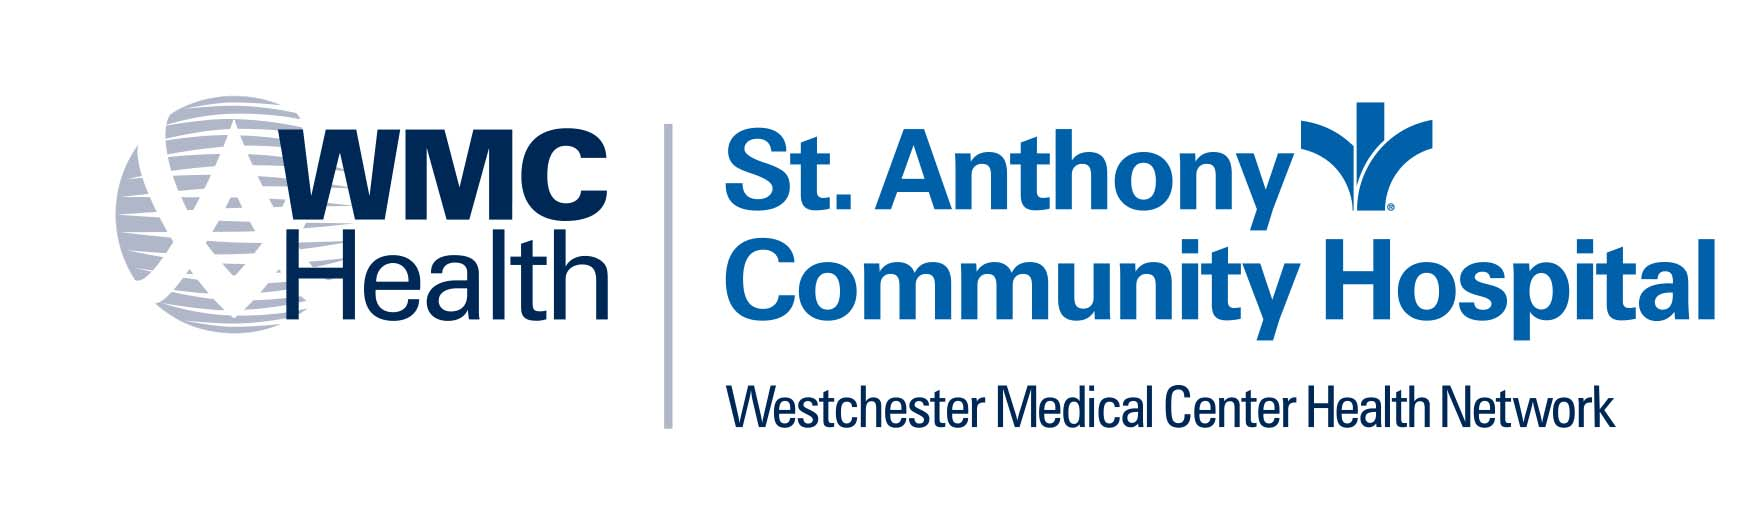 St. Anthony's Community Hospital